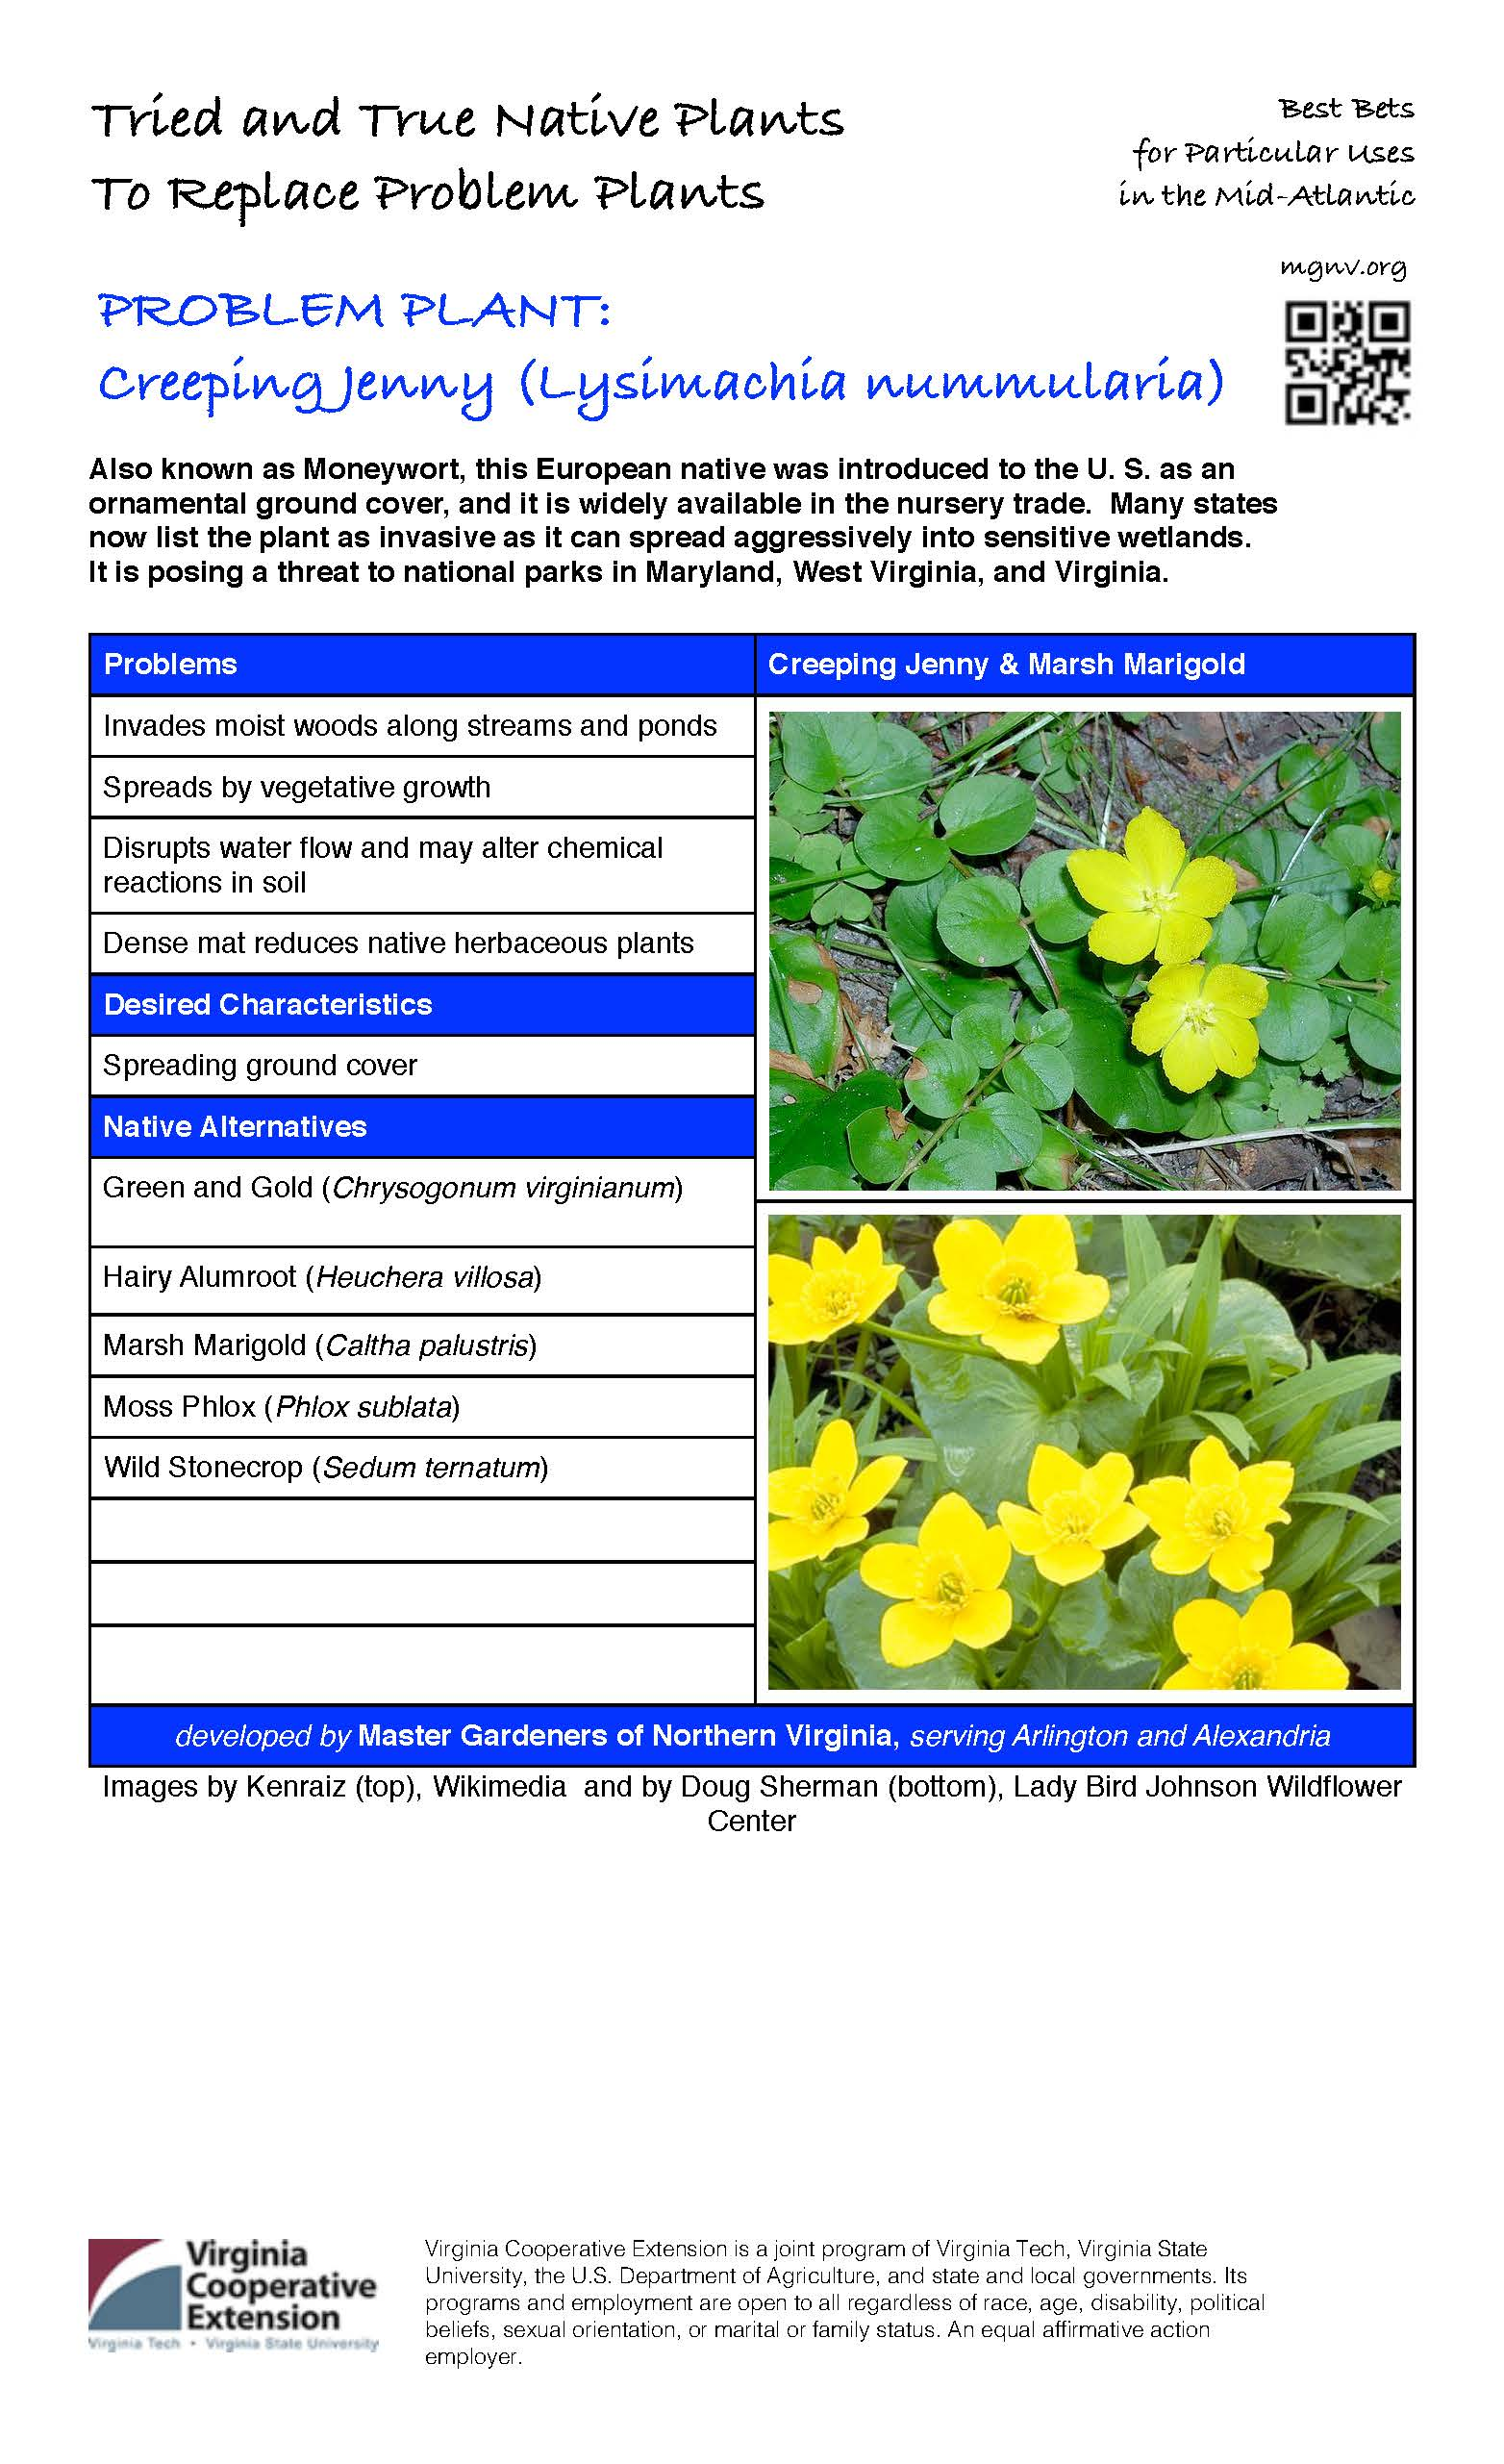 Problem Plant: Creeping Jenny | Master Gardeners of Northern Virginia